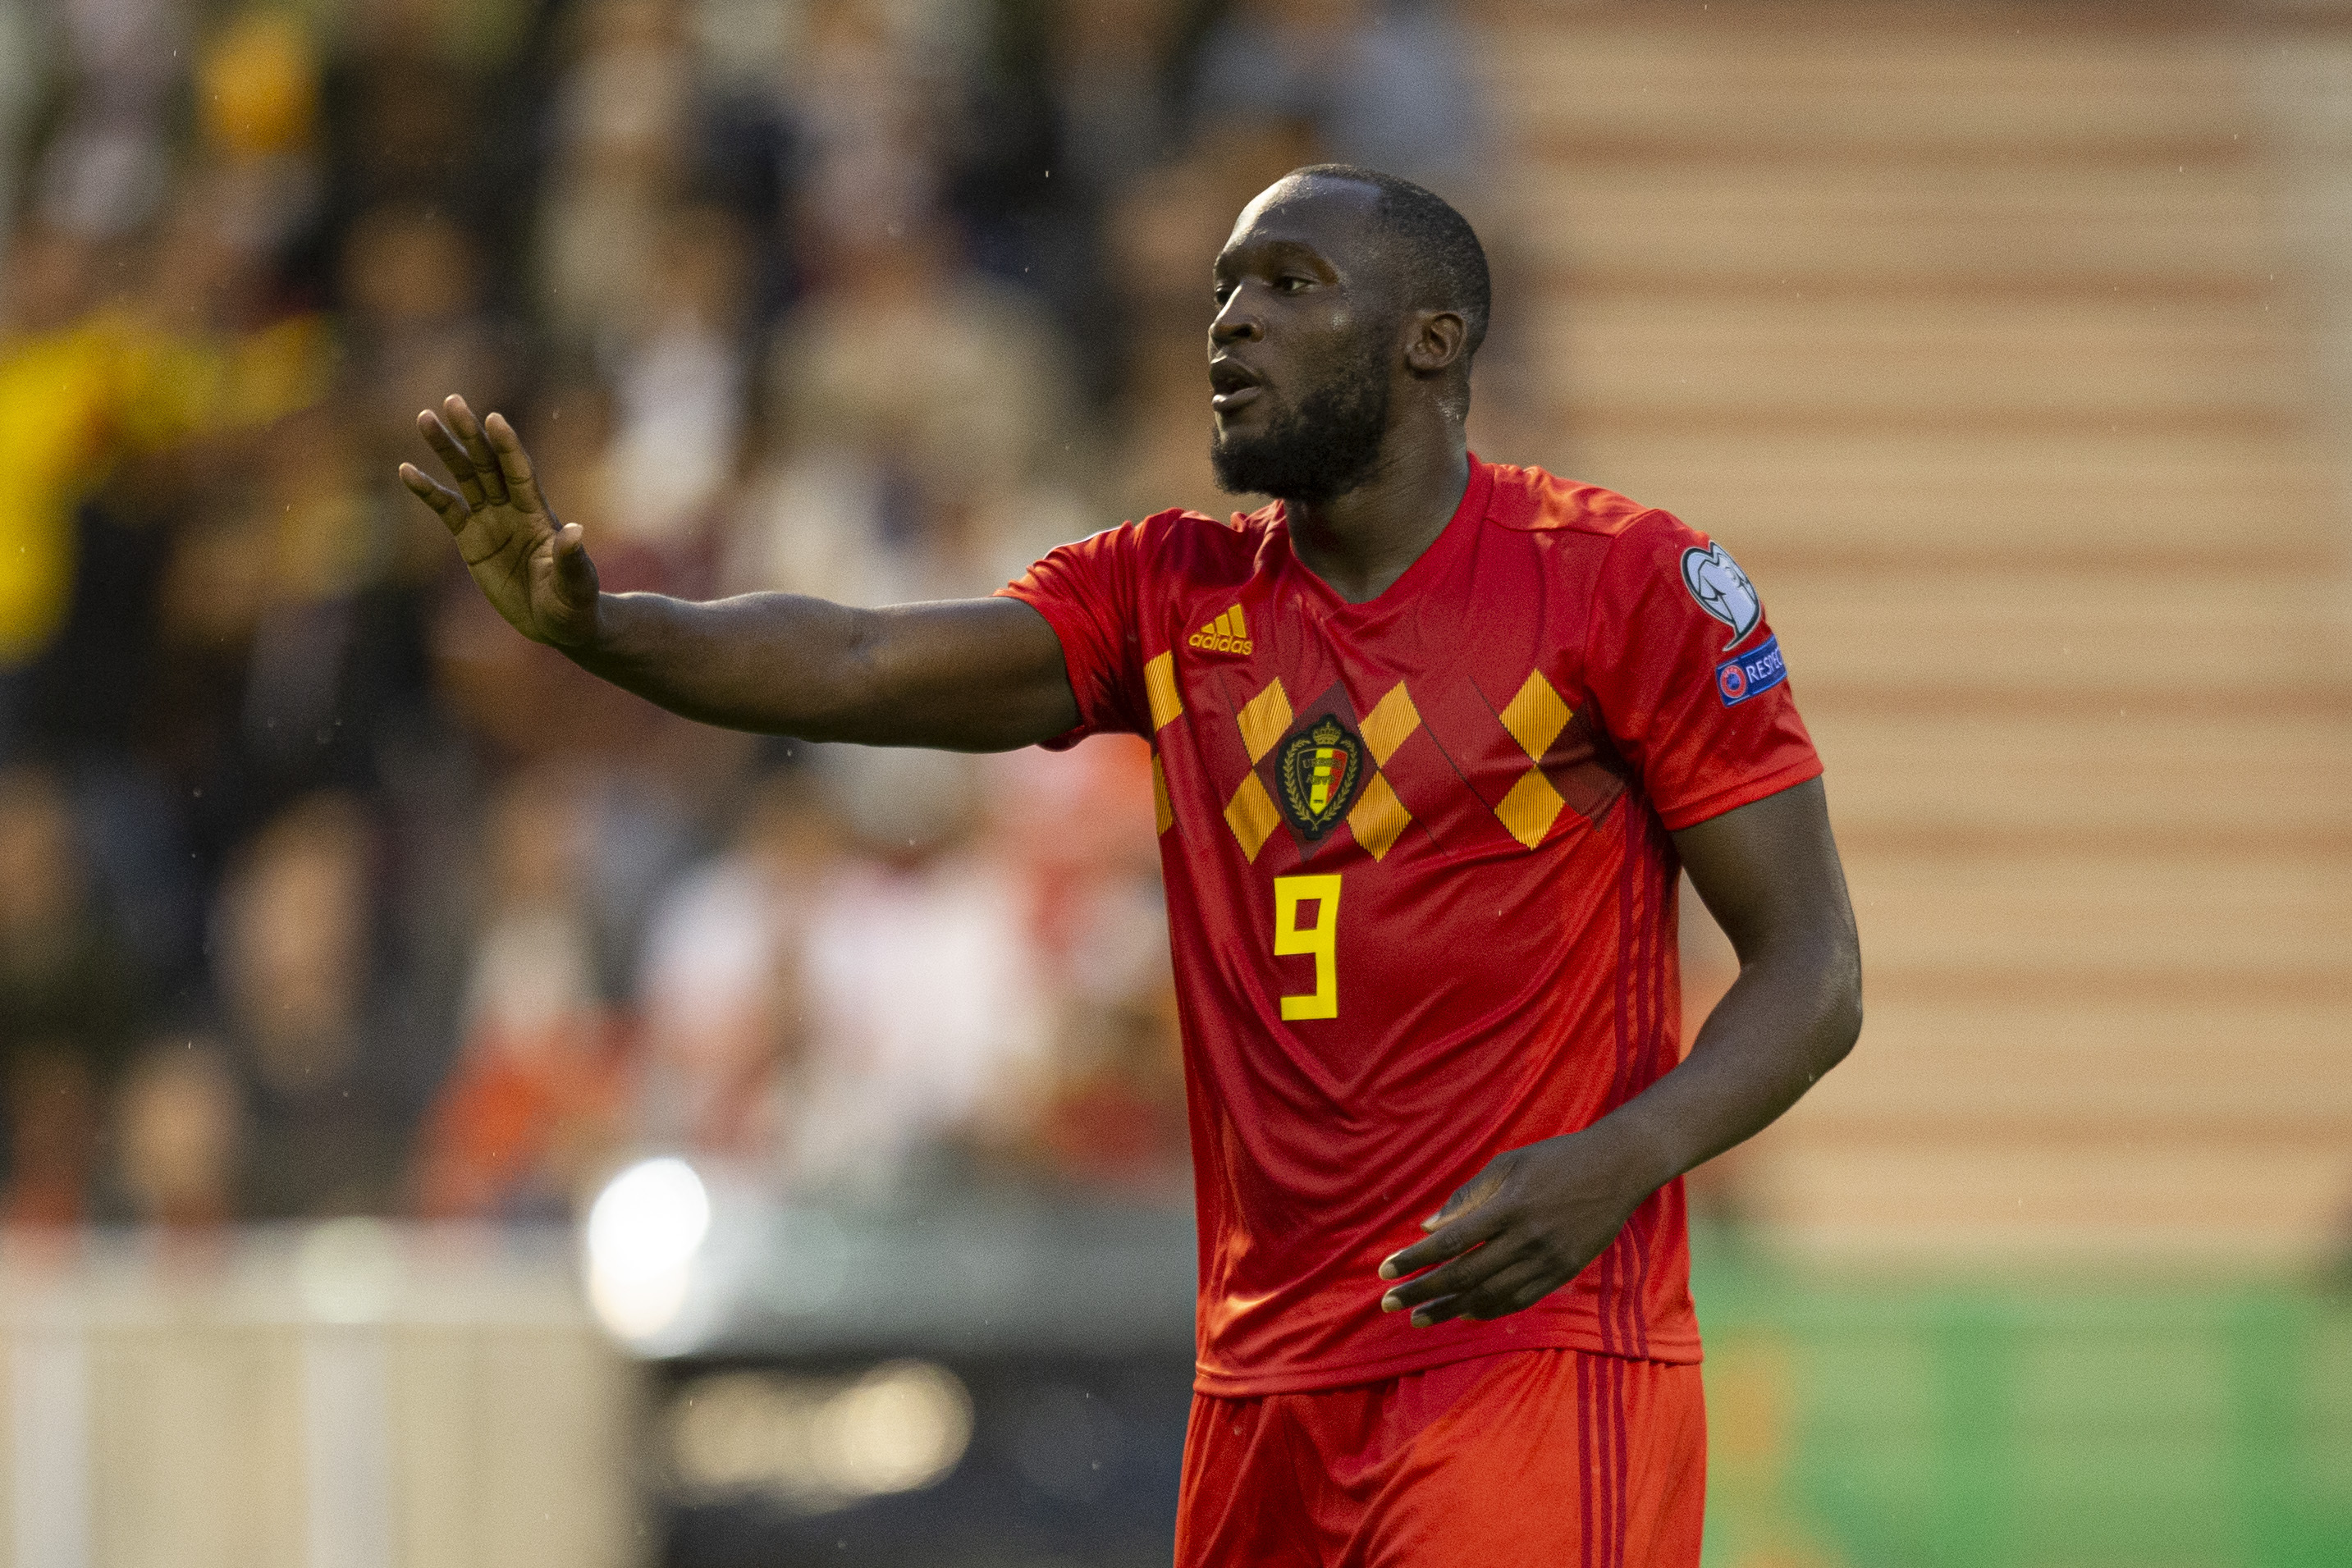 Report: Romelu Lukaku Posted Manchester United Data Online